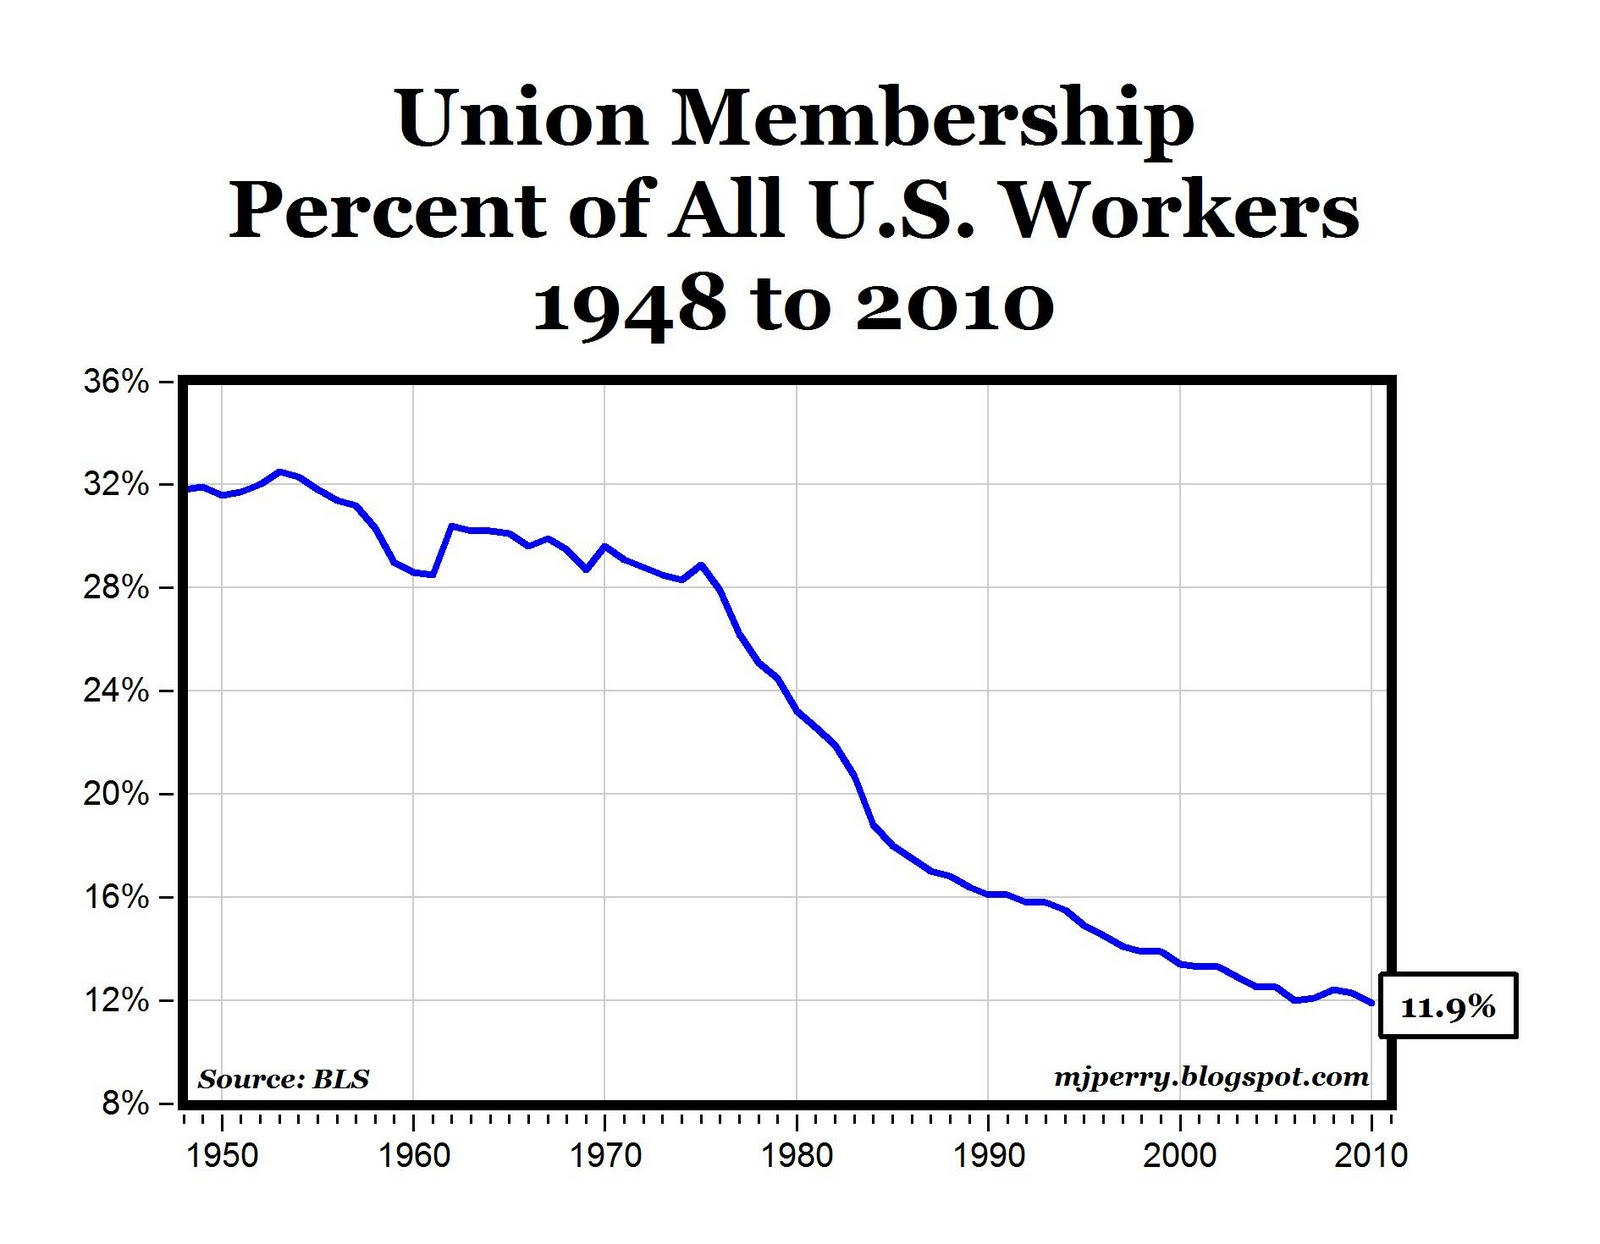 decline of trade unions As unions wane in american life, it's increasingly clear that they were doing a lot of good in sustaining the middle class.